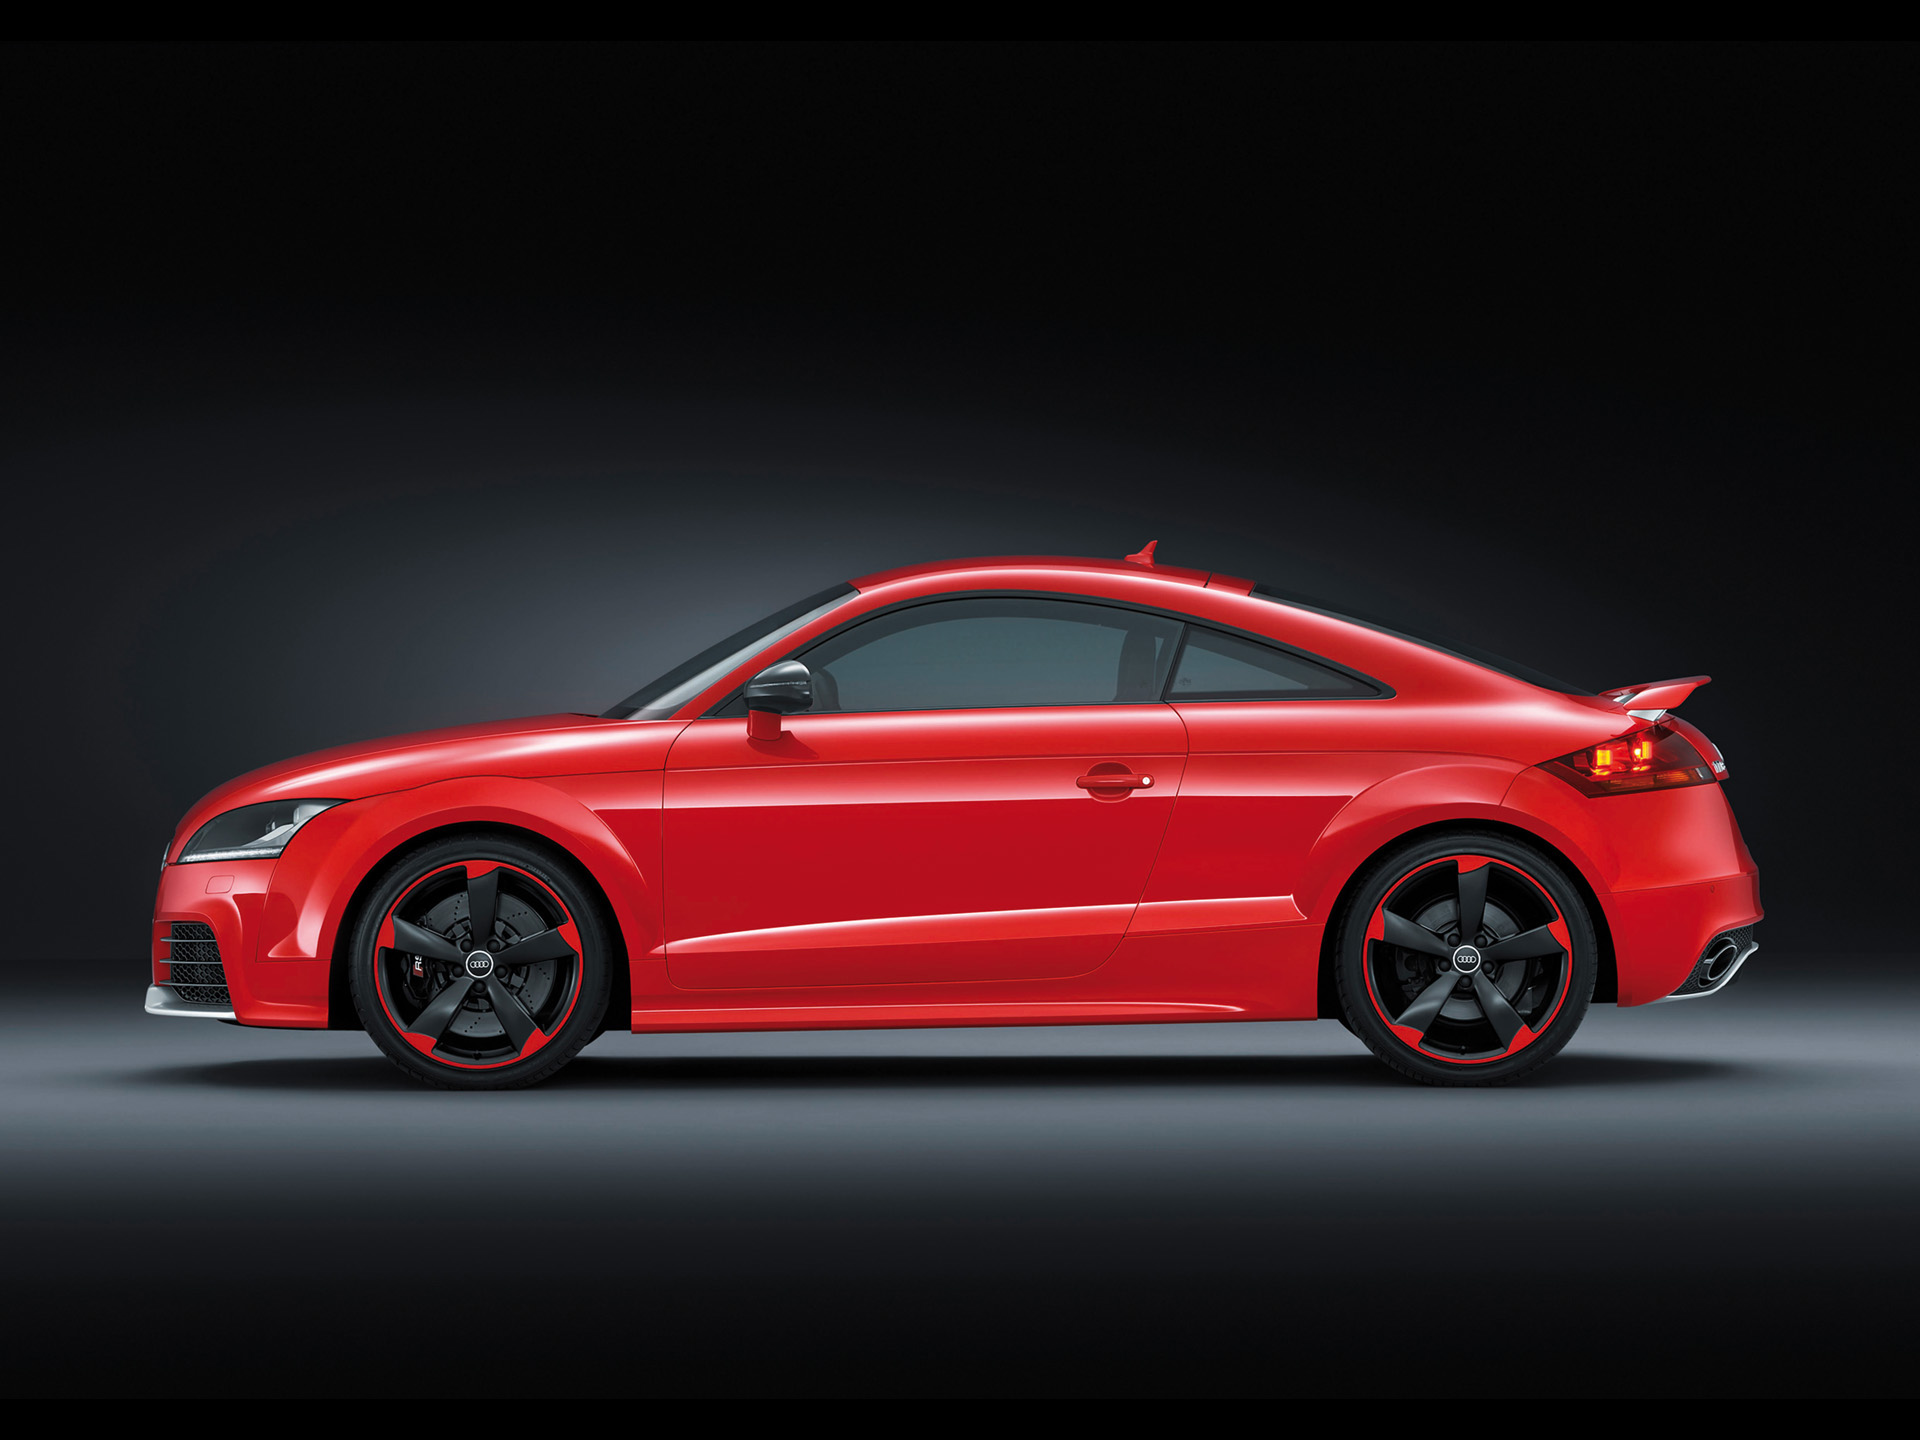 4k Hd Wallpapers For Iphone Audi Tt Rs Plus Side Wallpapers Audi Tt Rs Plus Side